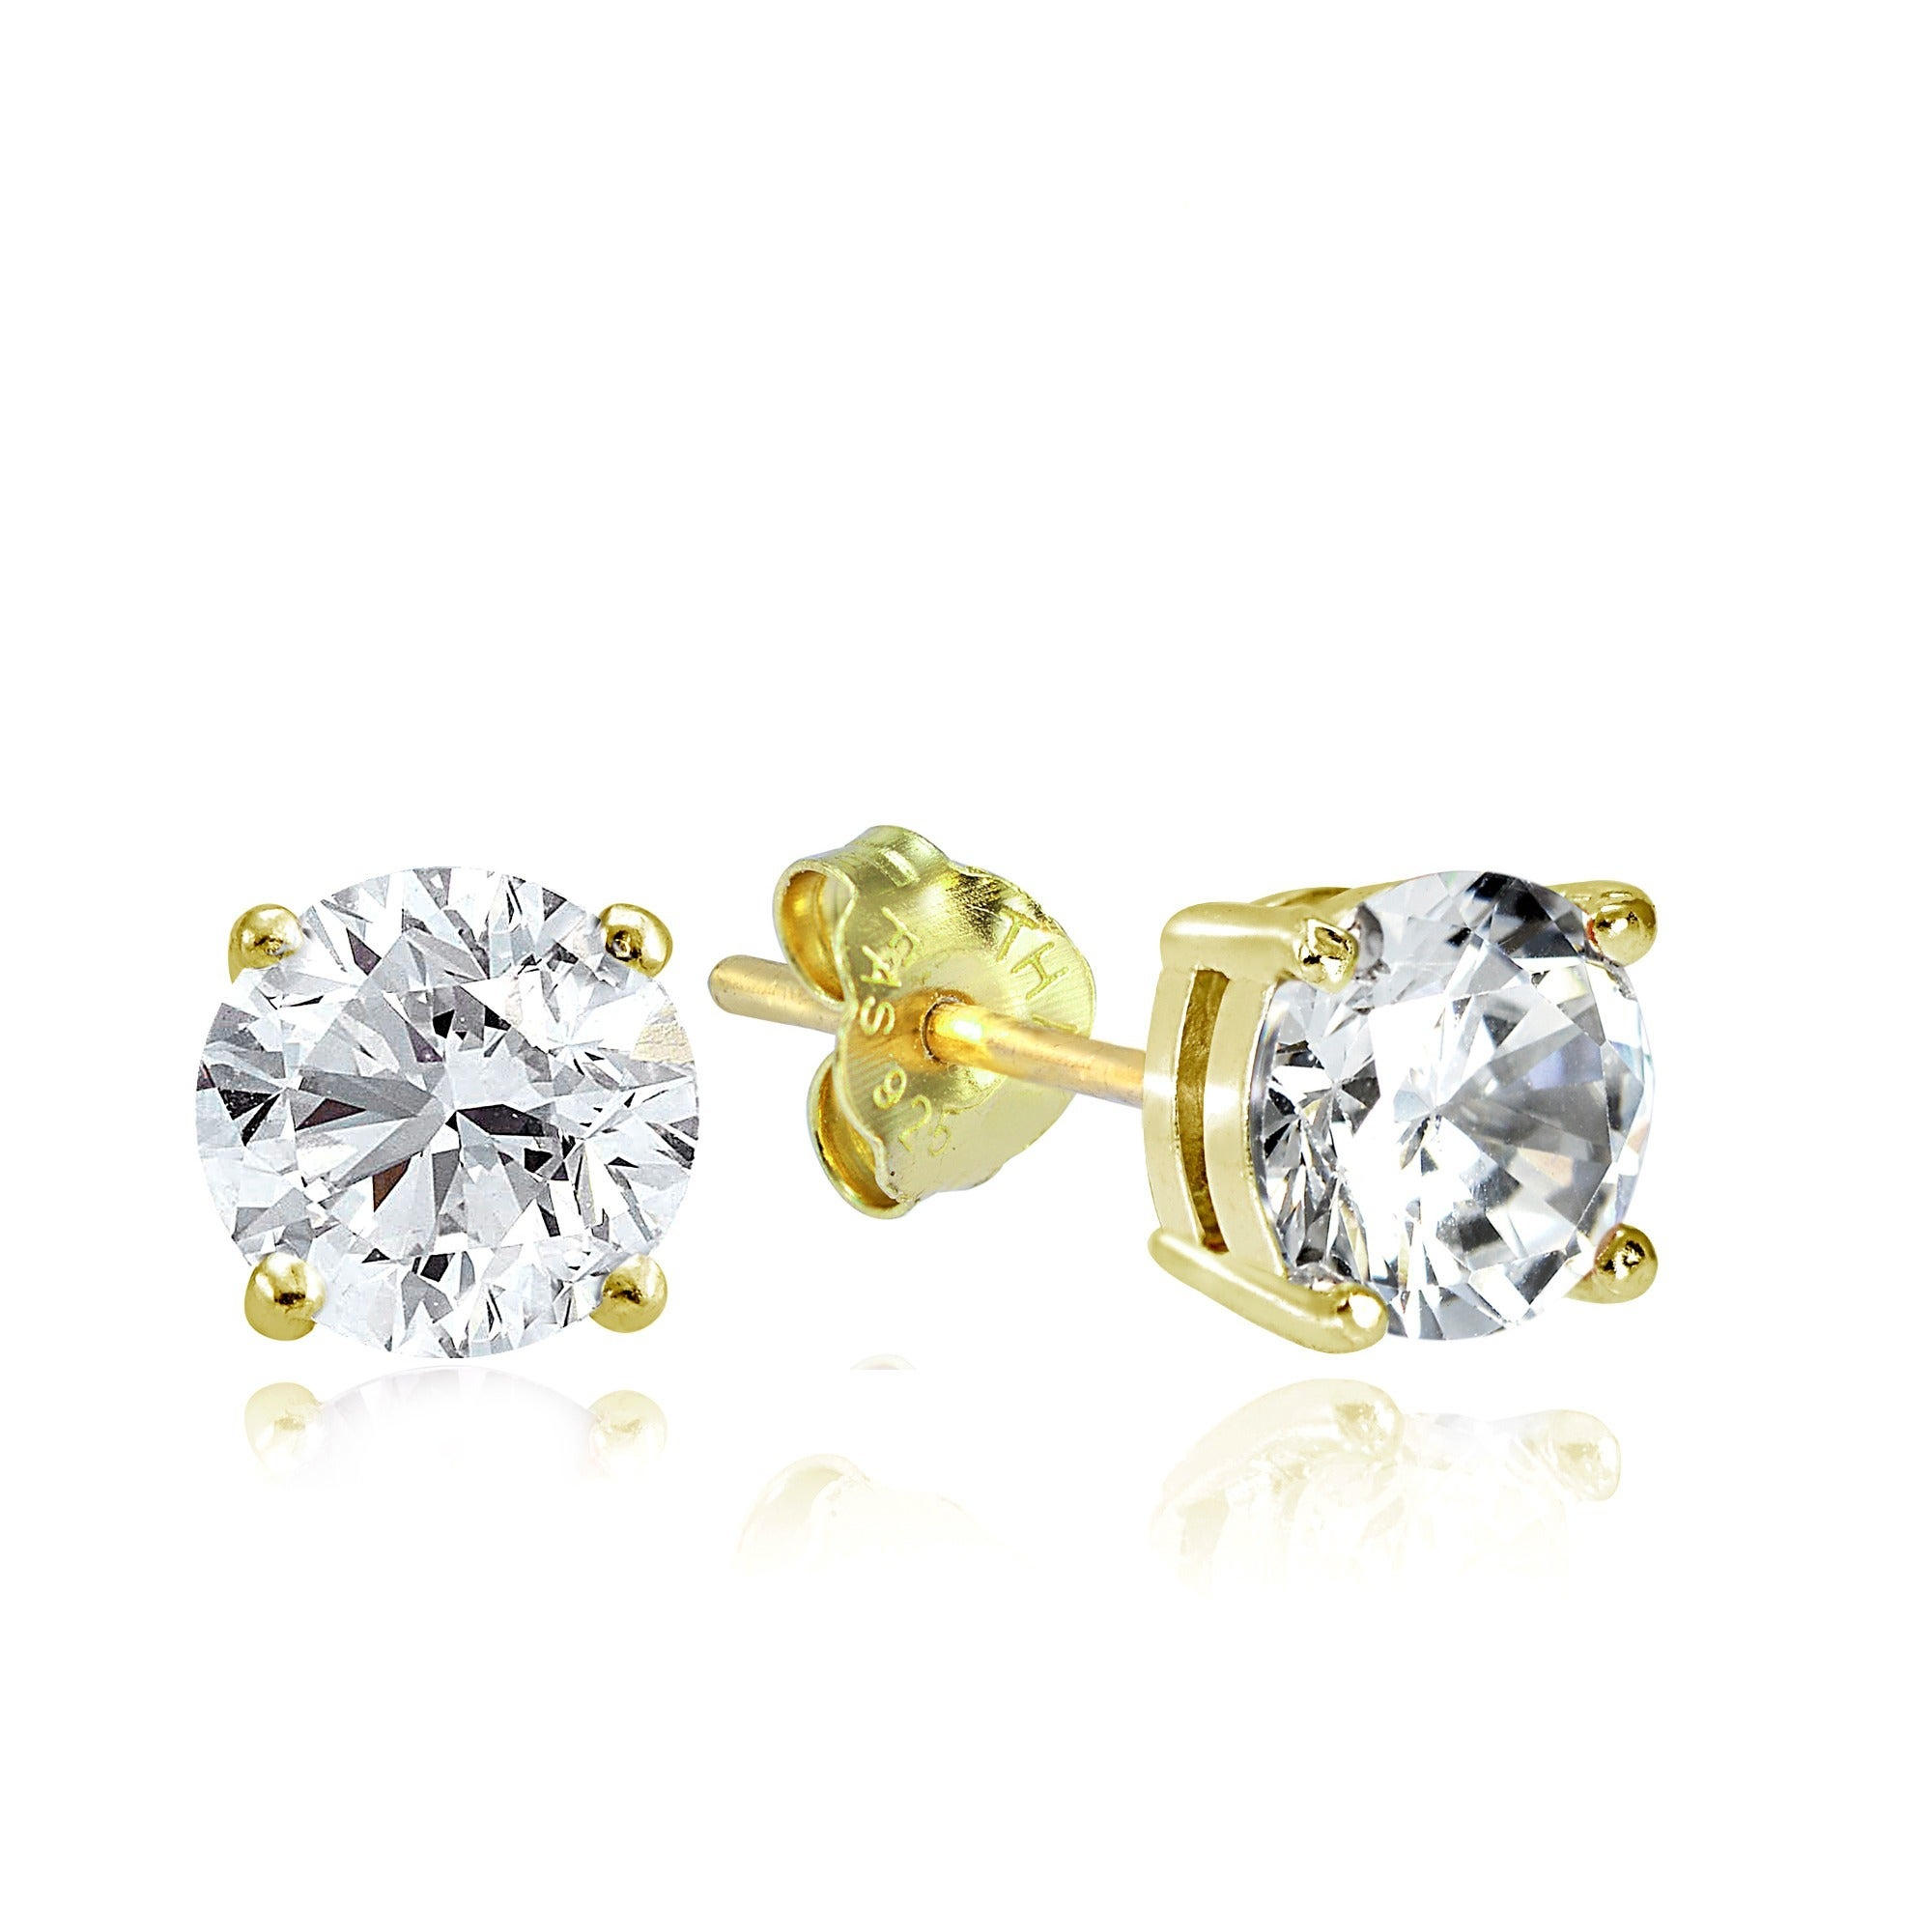 white stud earrings studs page this share solitaire diamond rounbd gold